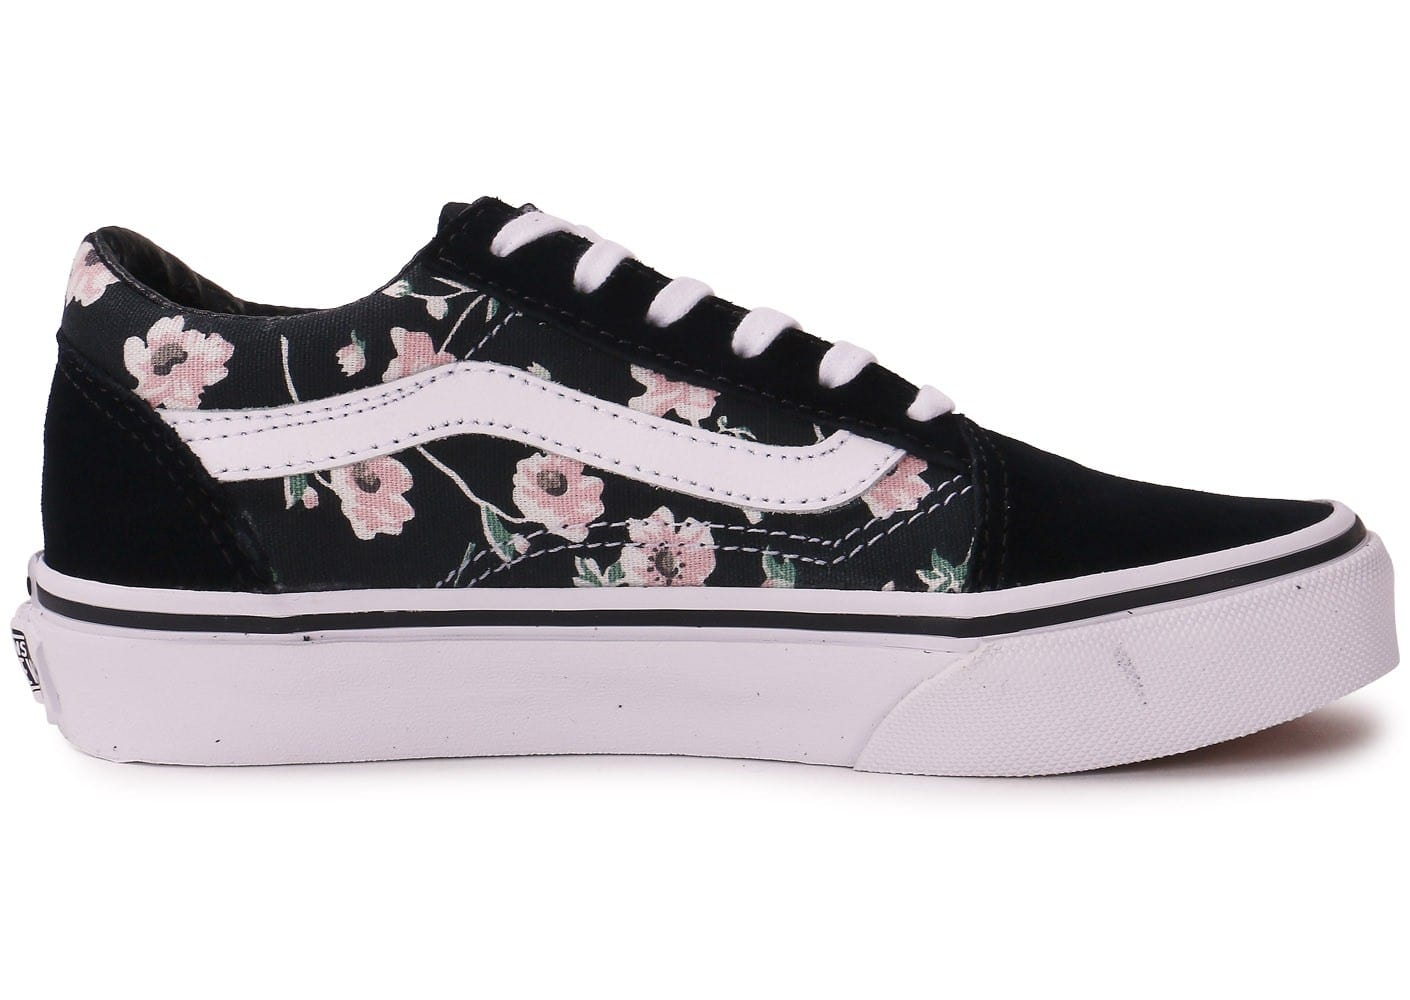 vans old skool enfant vintage floral chaussures chaussures chausport. Black Bedroom Furniture Sets. Home Design Ideas